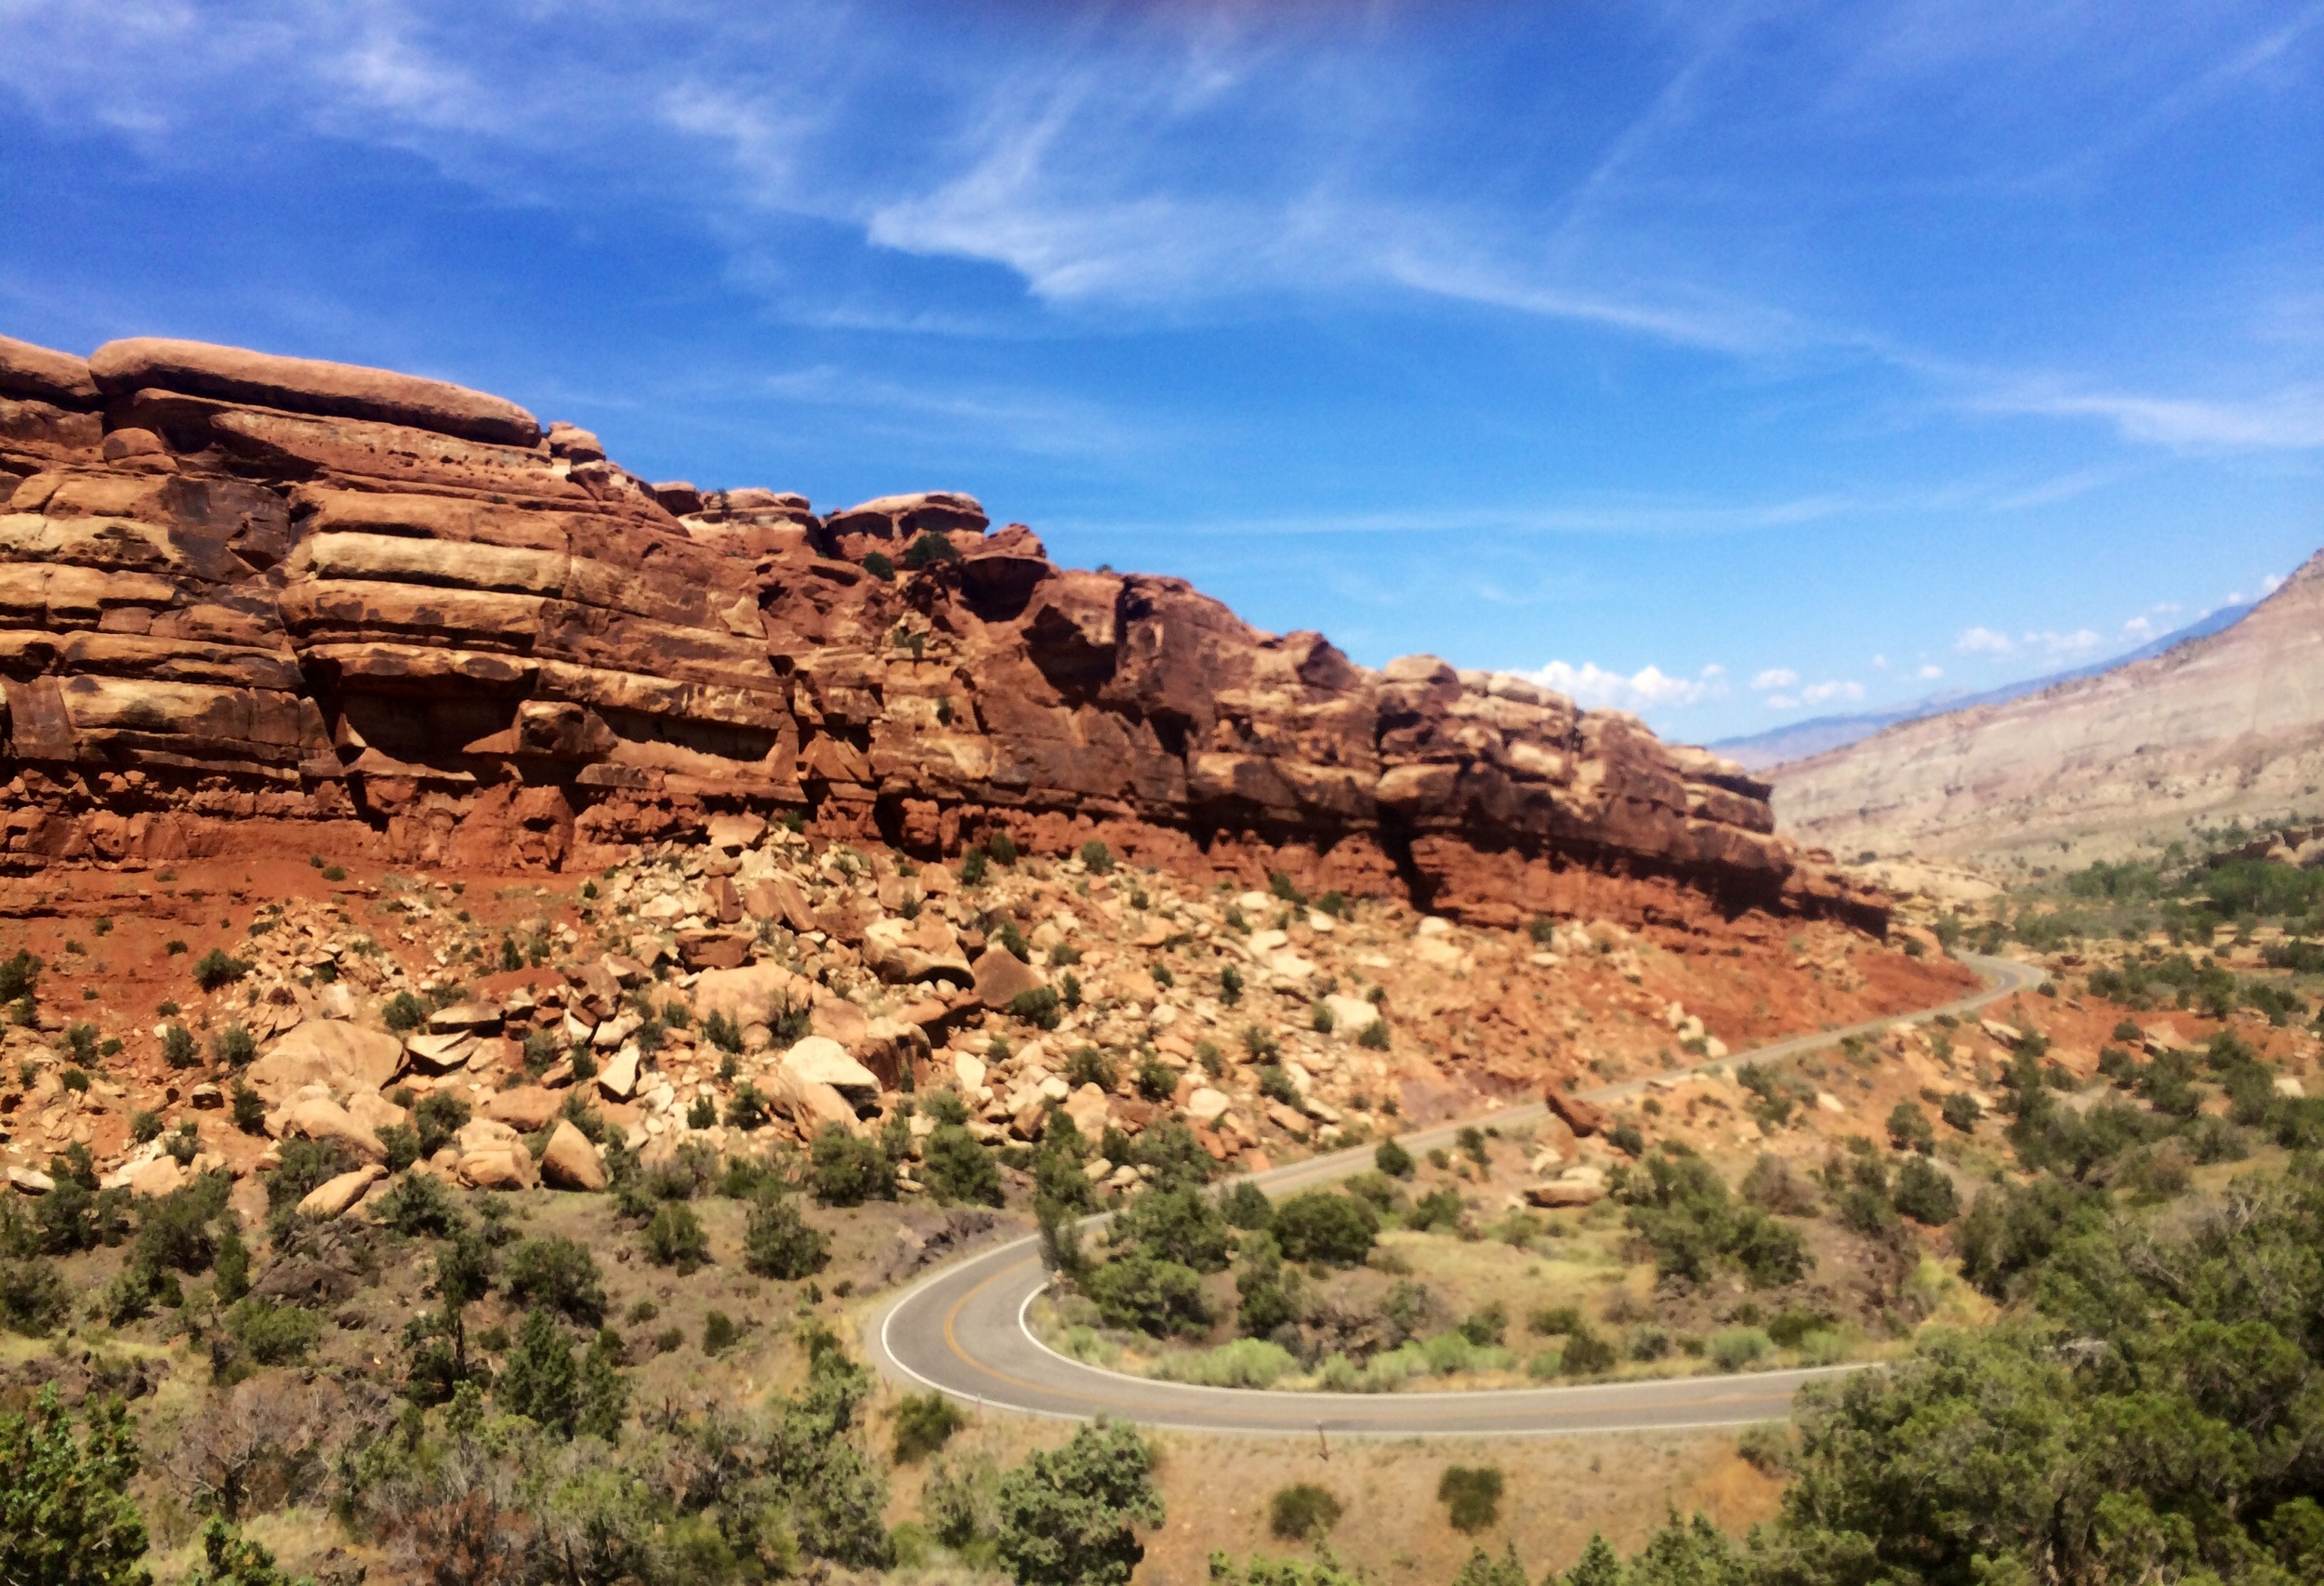 The switchbacks up to the top of the canyon in Colorado National Monument